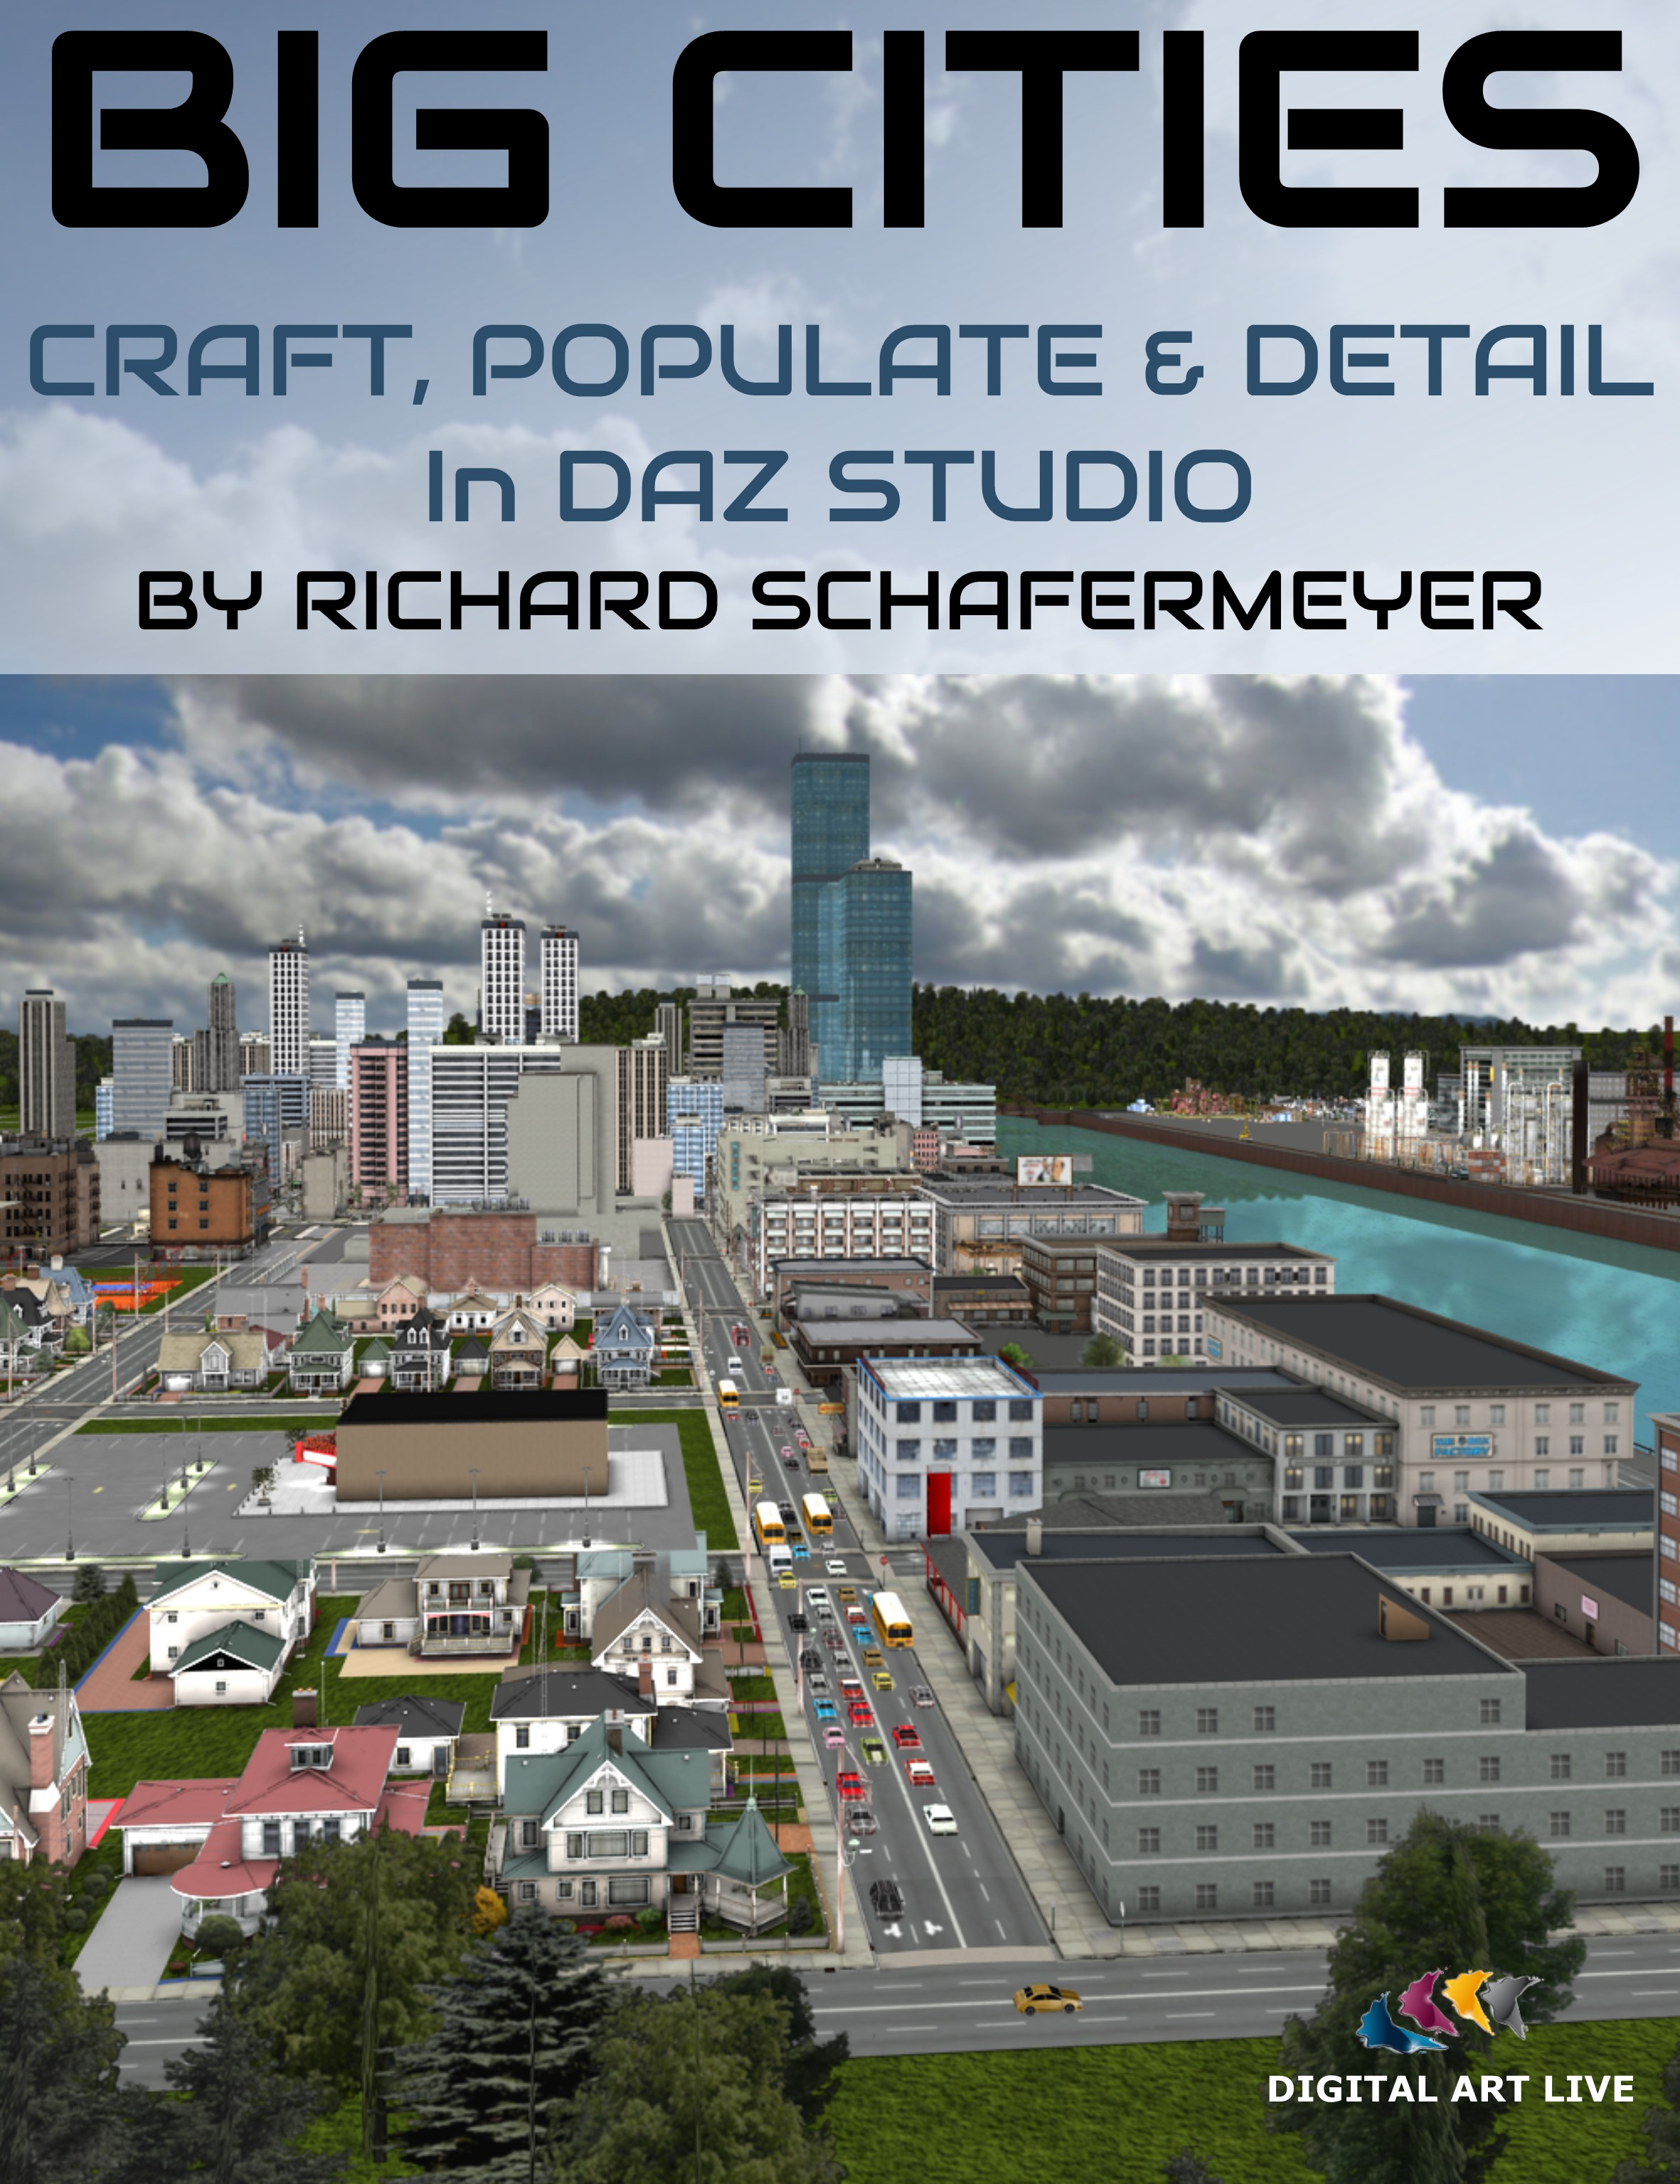 How to Craft and Populate and Detail Big Cities in Daz Studio by: Digital Art Live, 3D Models by Daz 3D